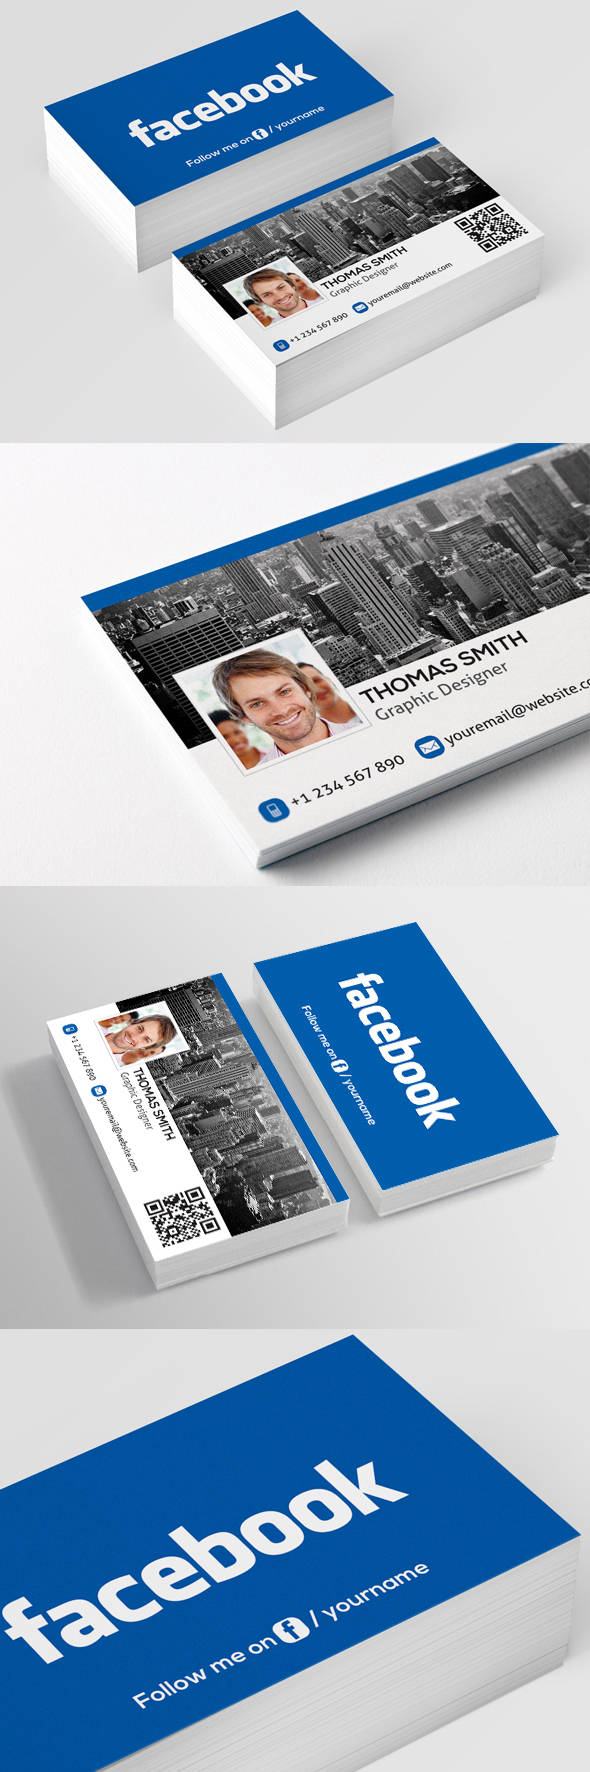 business cards-business cards templates (21)